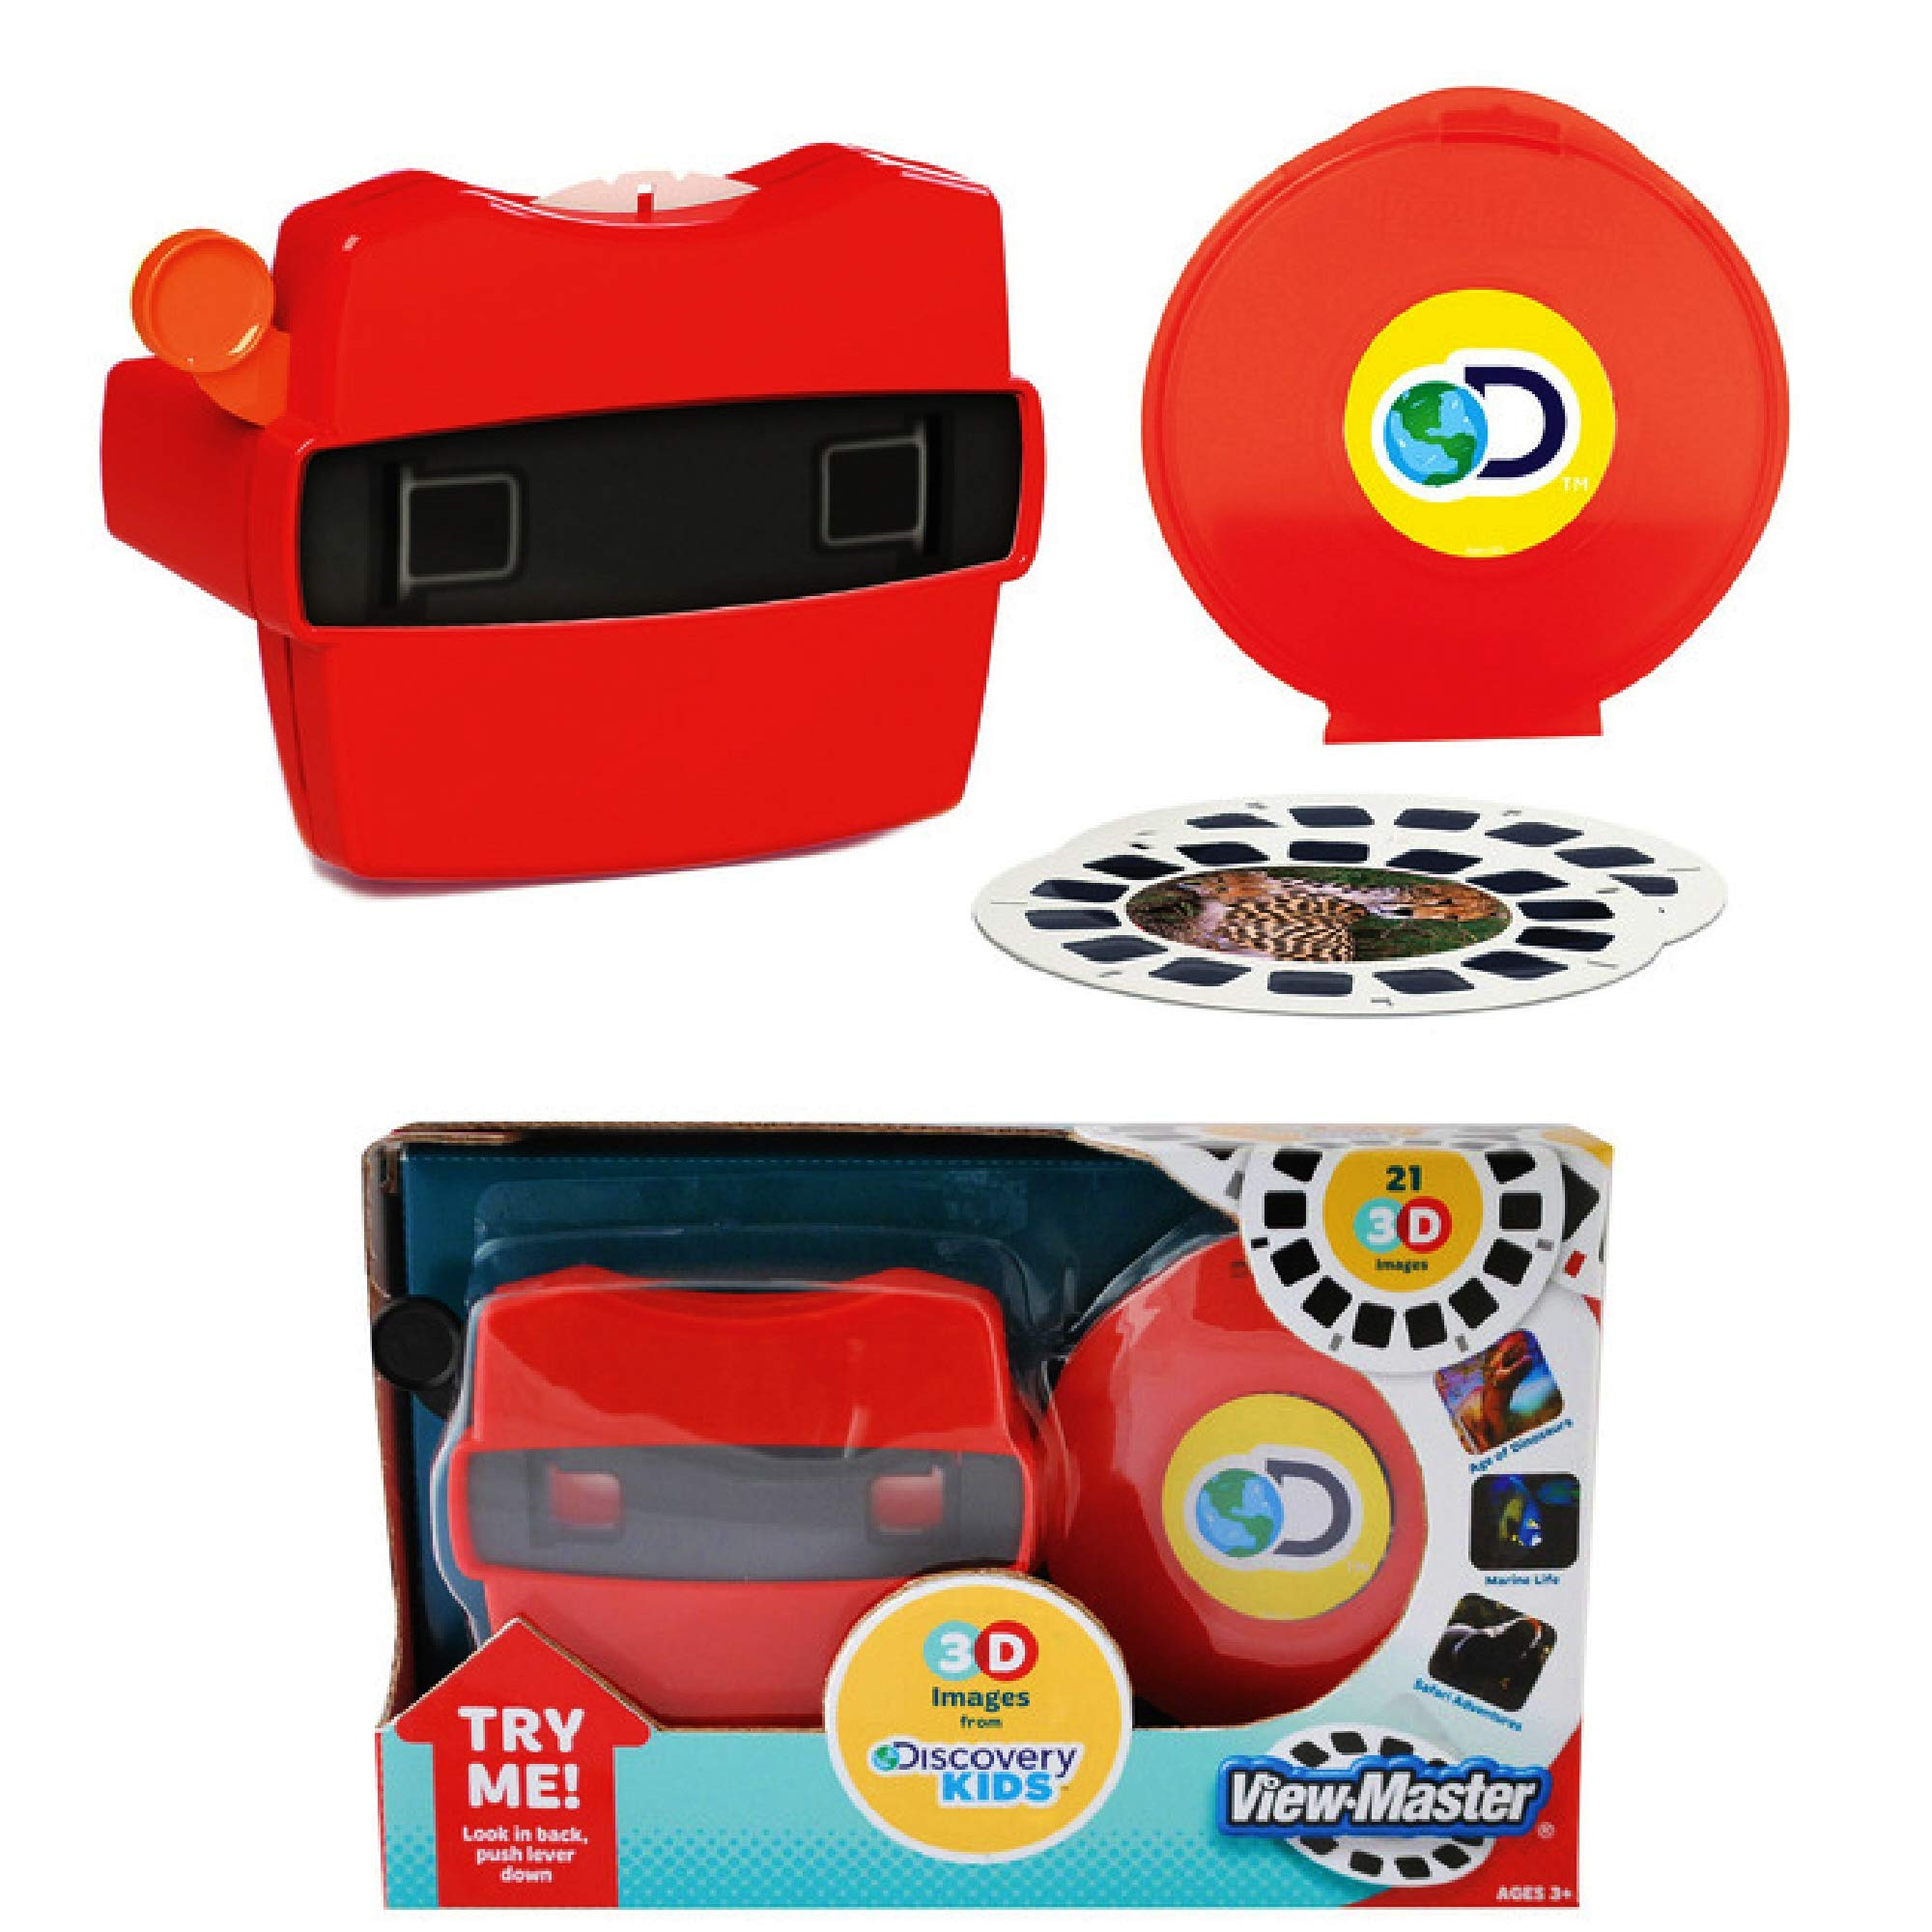 View Master Classic 3D Adventures Discovery Boxed Set & Marine Life Refill Gift Set Bundle with Bonus Matty's Toy Stop Storage Bag - 2 Pack by View Master (Image #2)